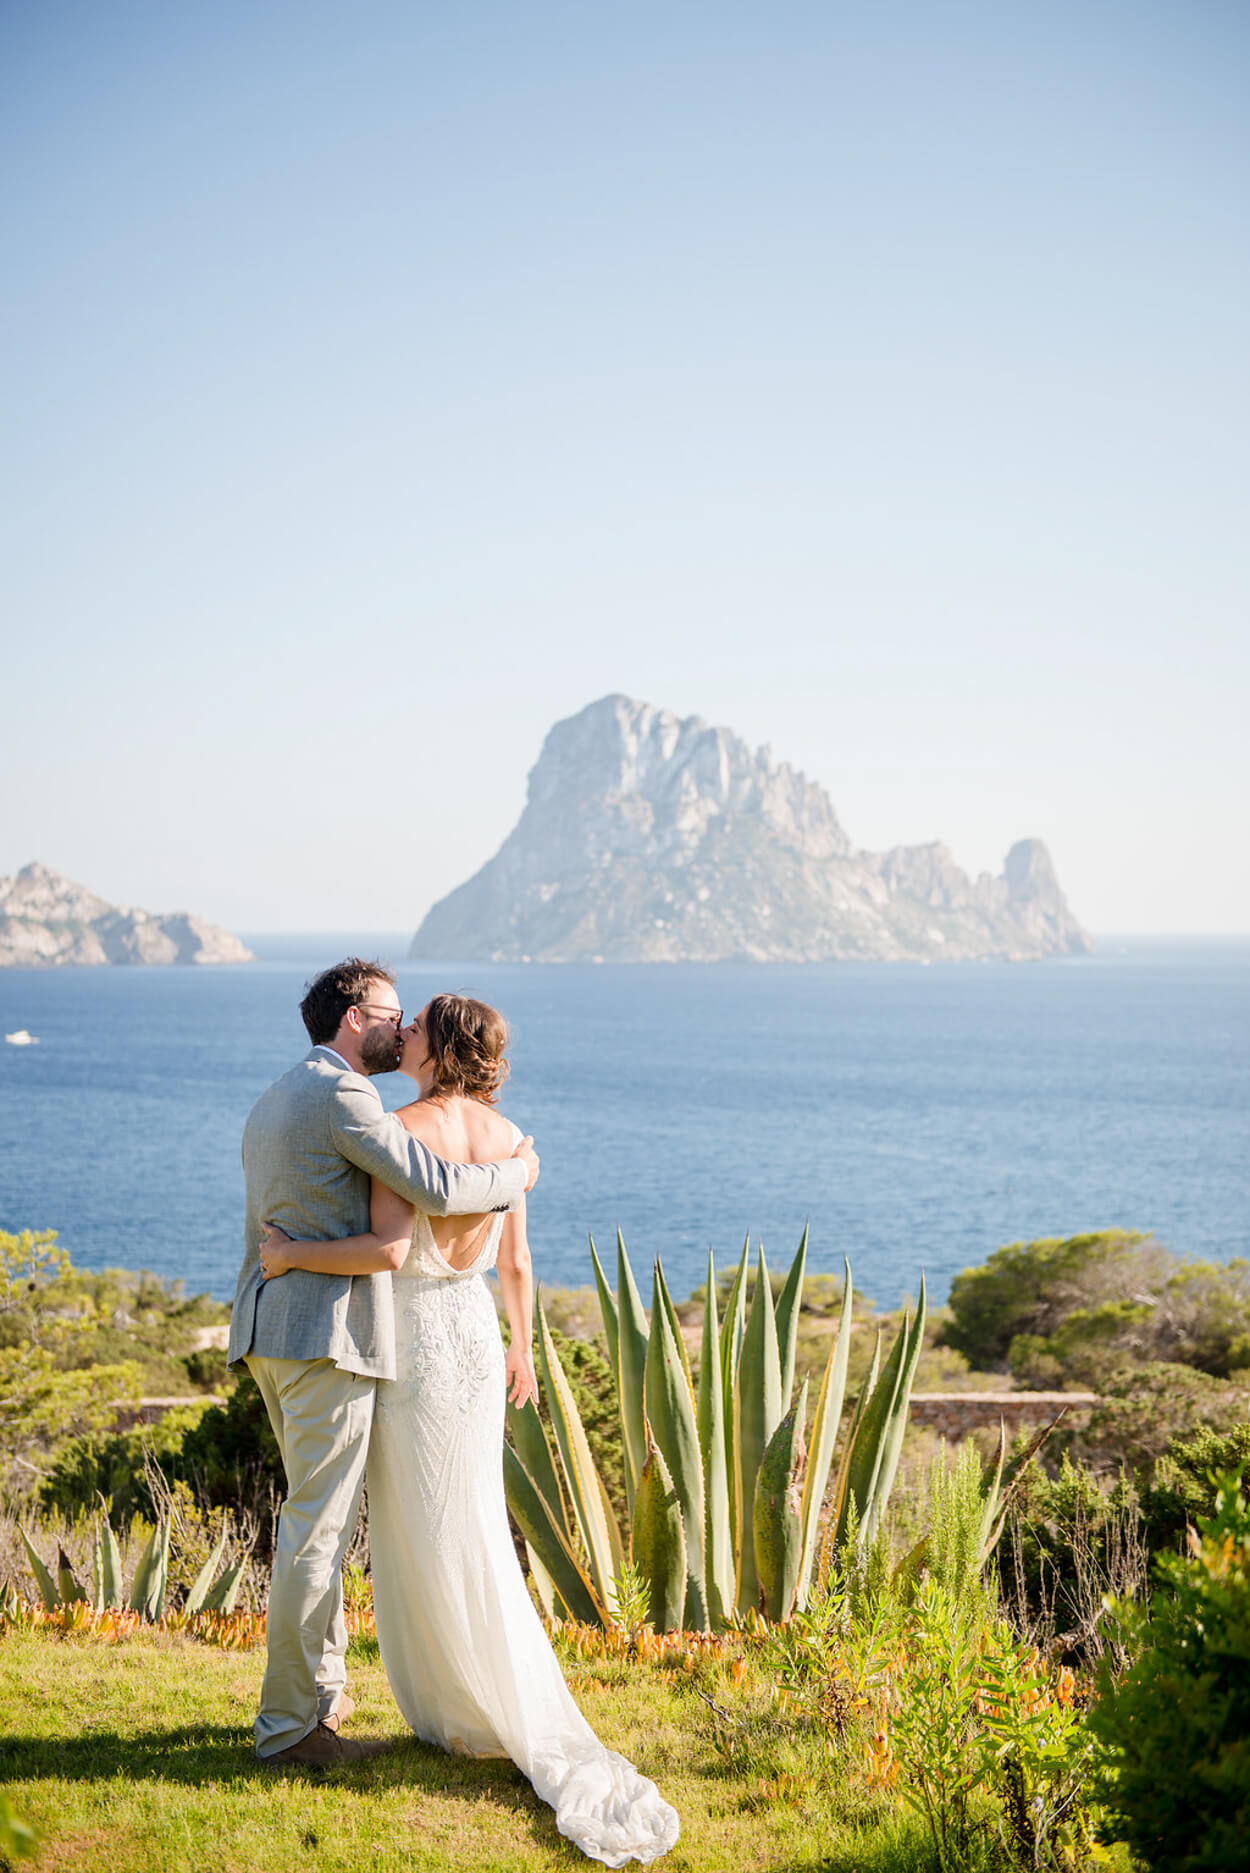 es vedra sunset couple portrait garden seaview wedding